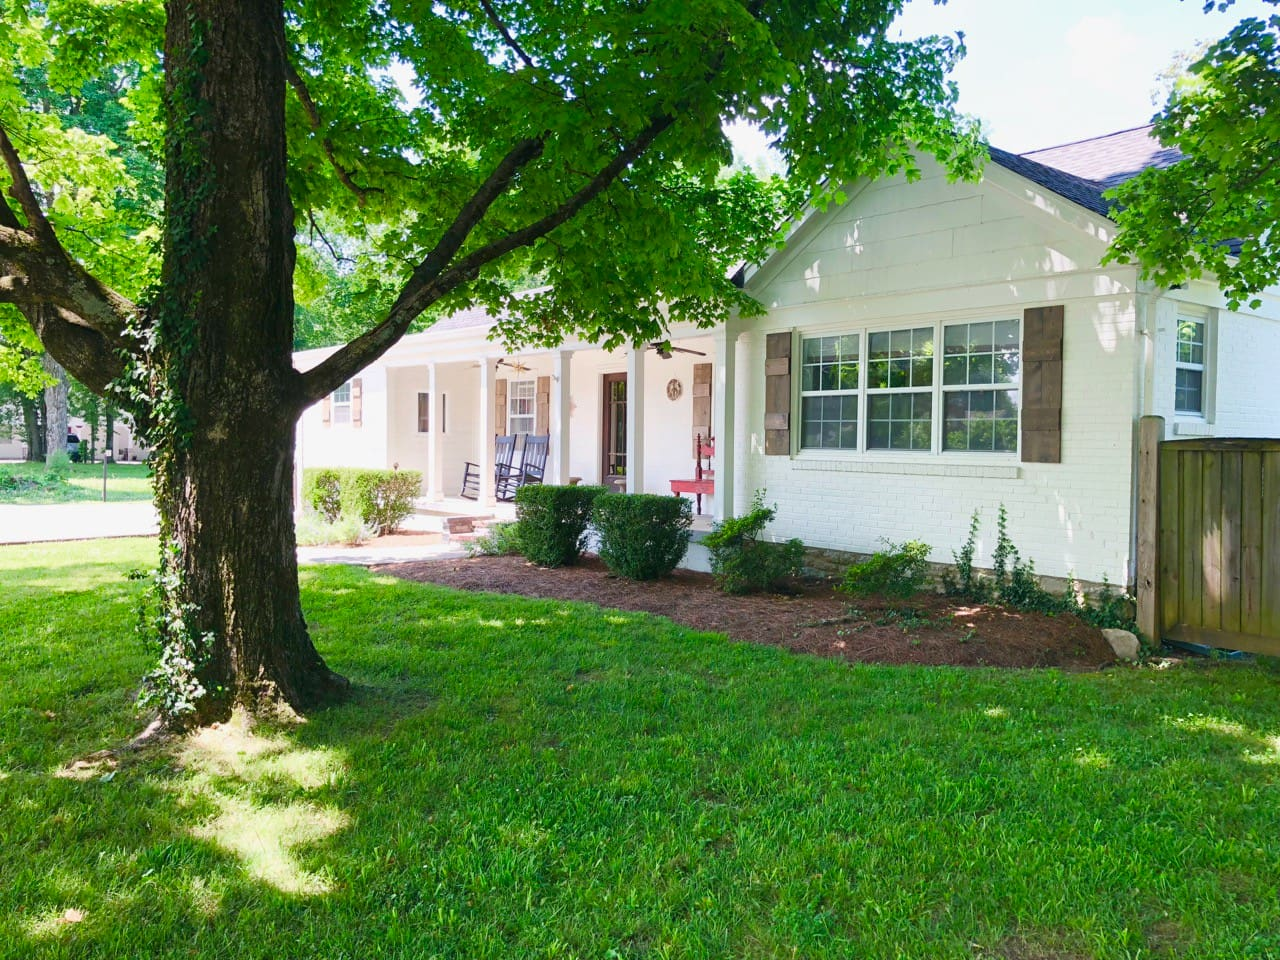 Our lovely home sits on 1/2 acre and is surrounded by beautiful majestic Maples and a lovely landscaped yard.